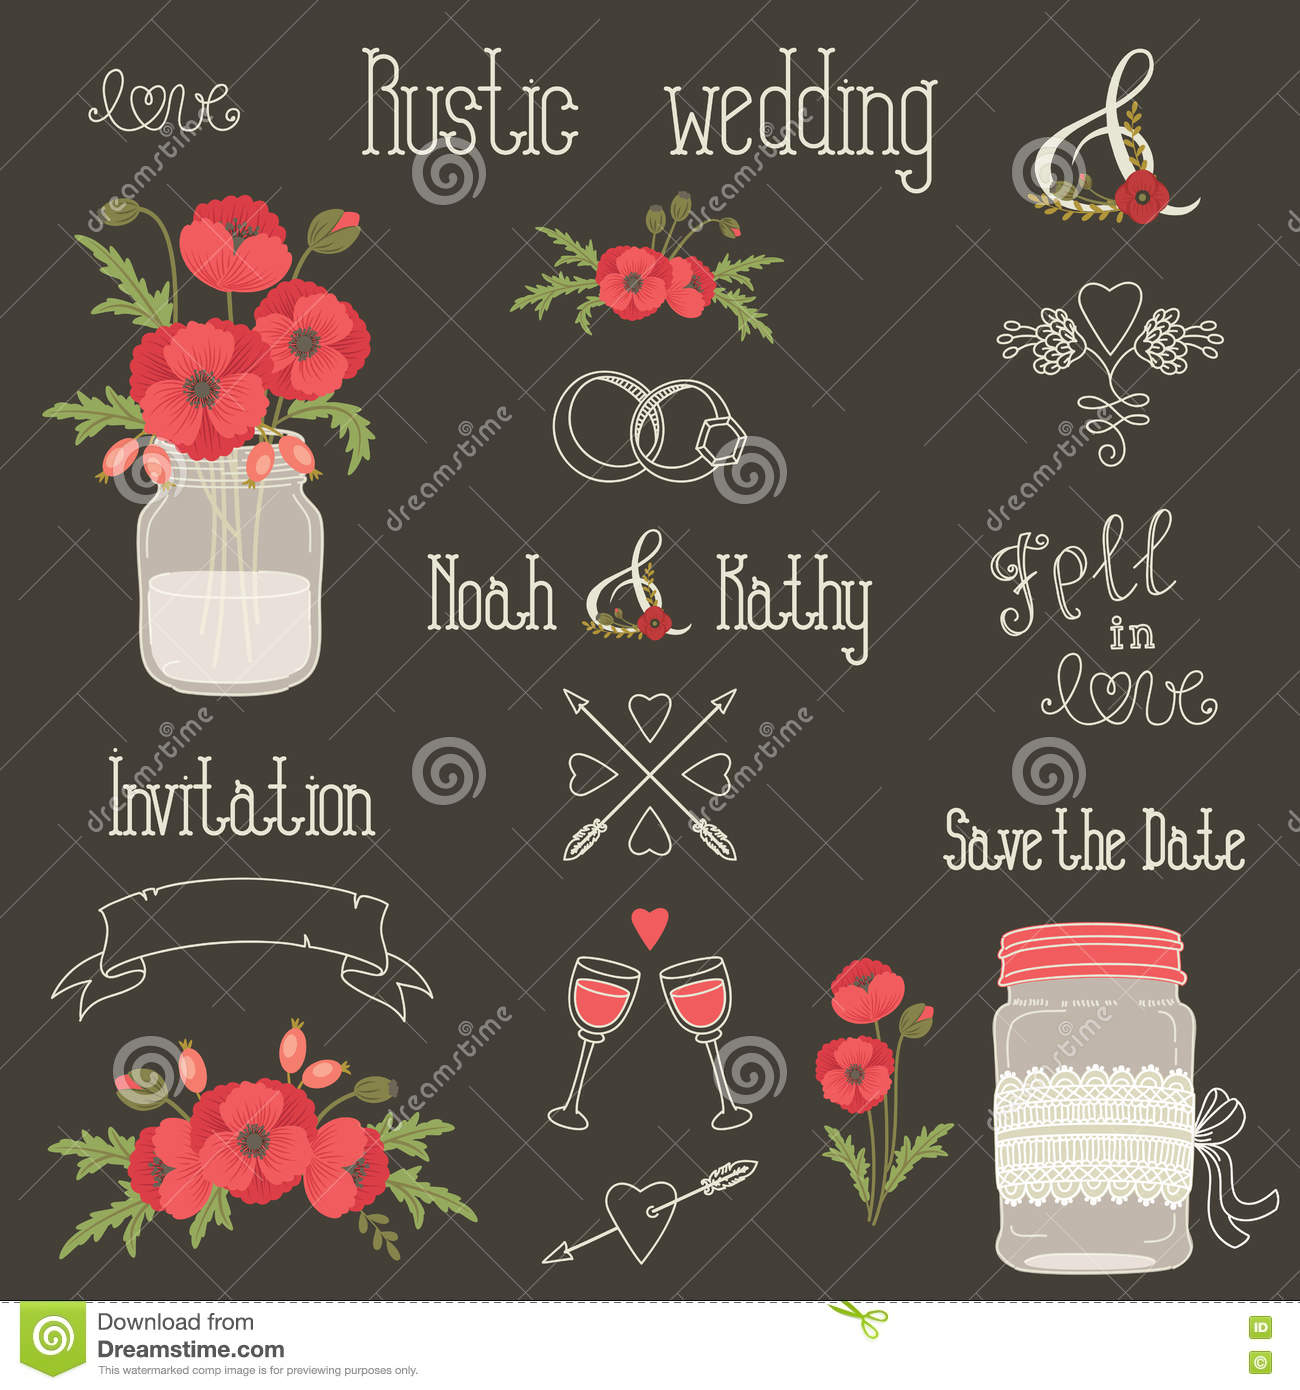 Rustic Wedding Design Elements With Poppy Flowers Stock Vector